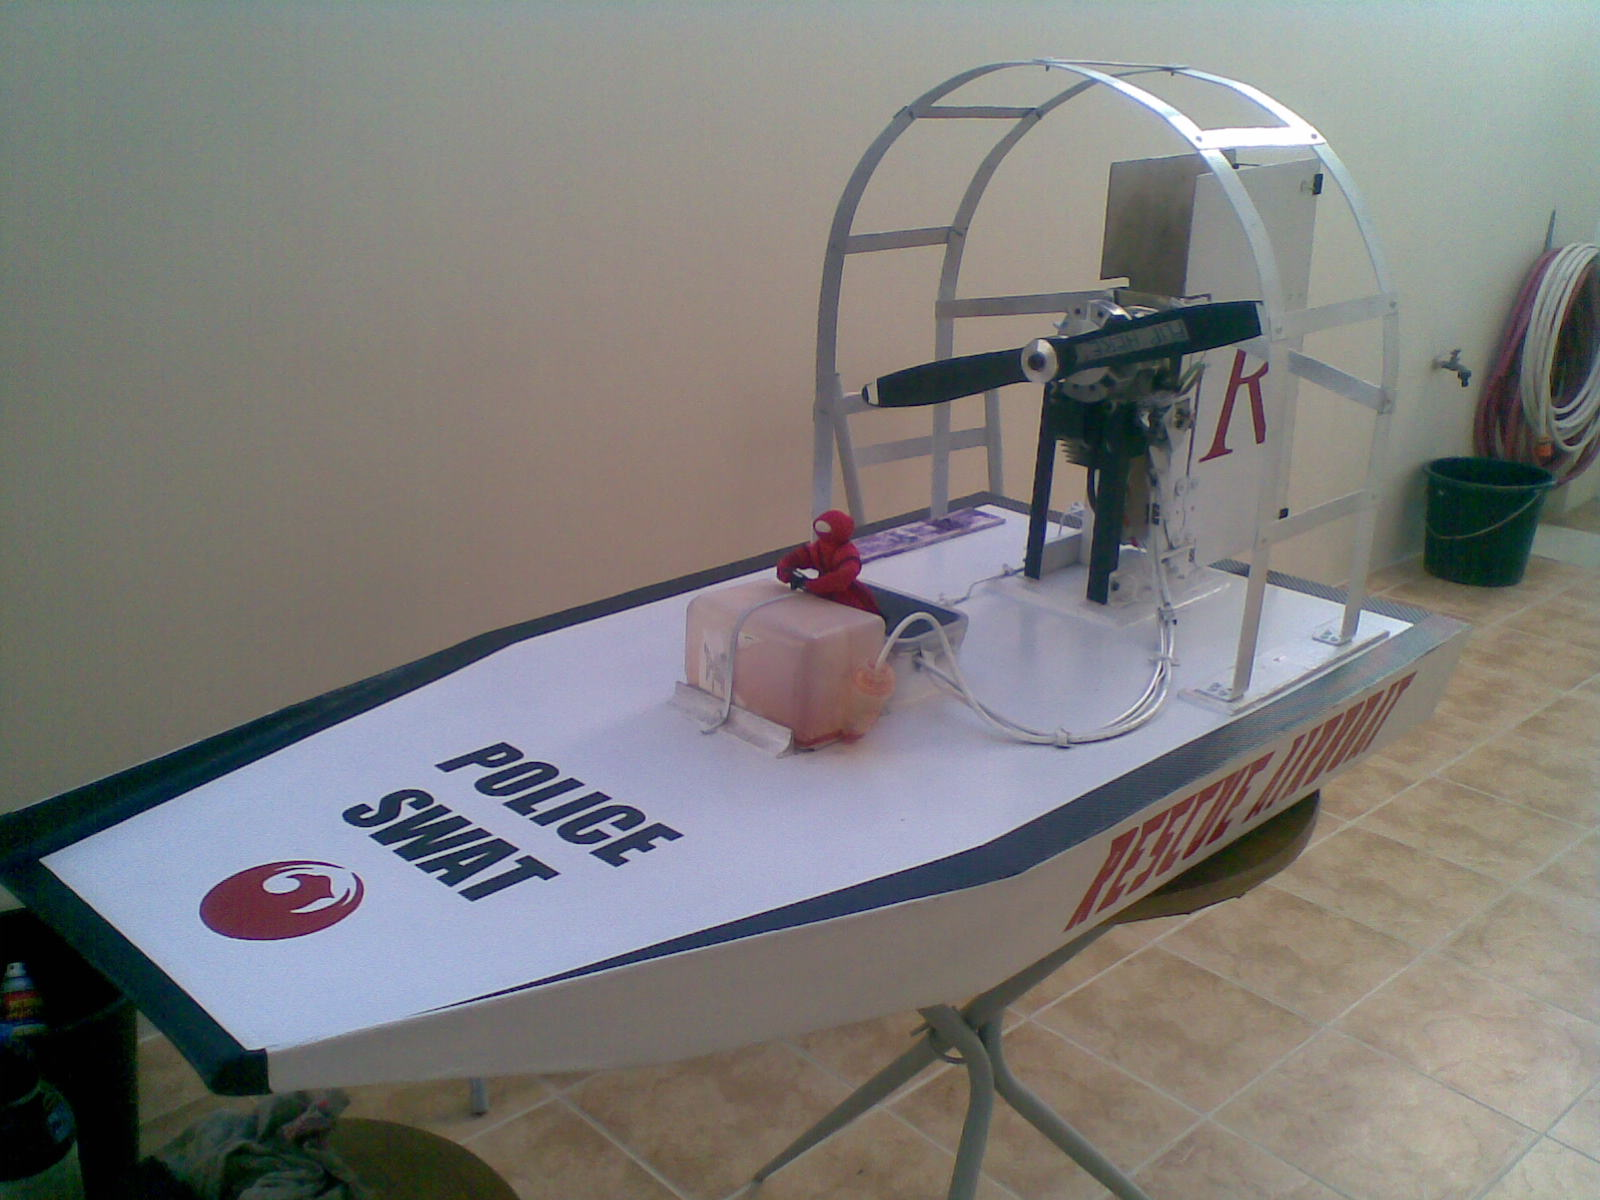 Homemade Rc Boat Part 3 Backroom Workdesk Wallpaper Gallery Airboat Plans